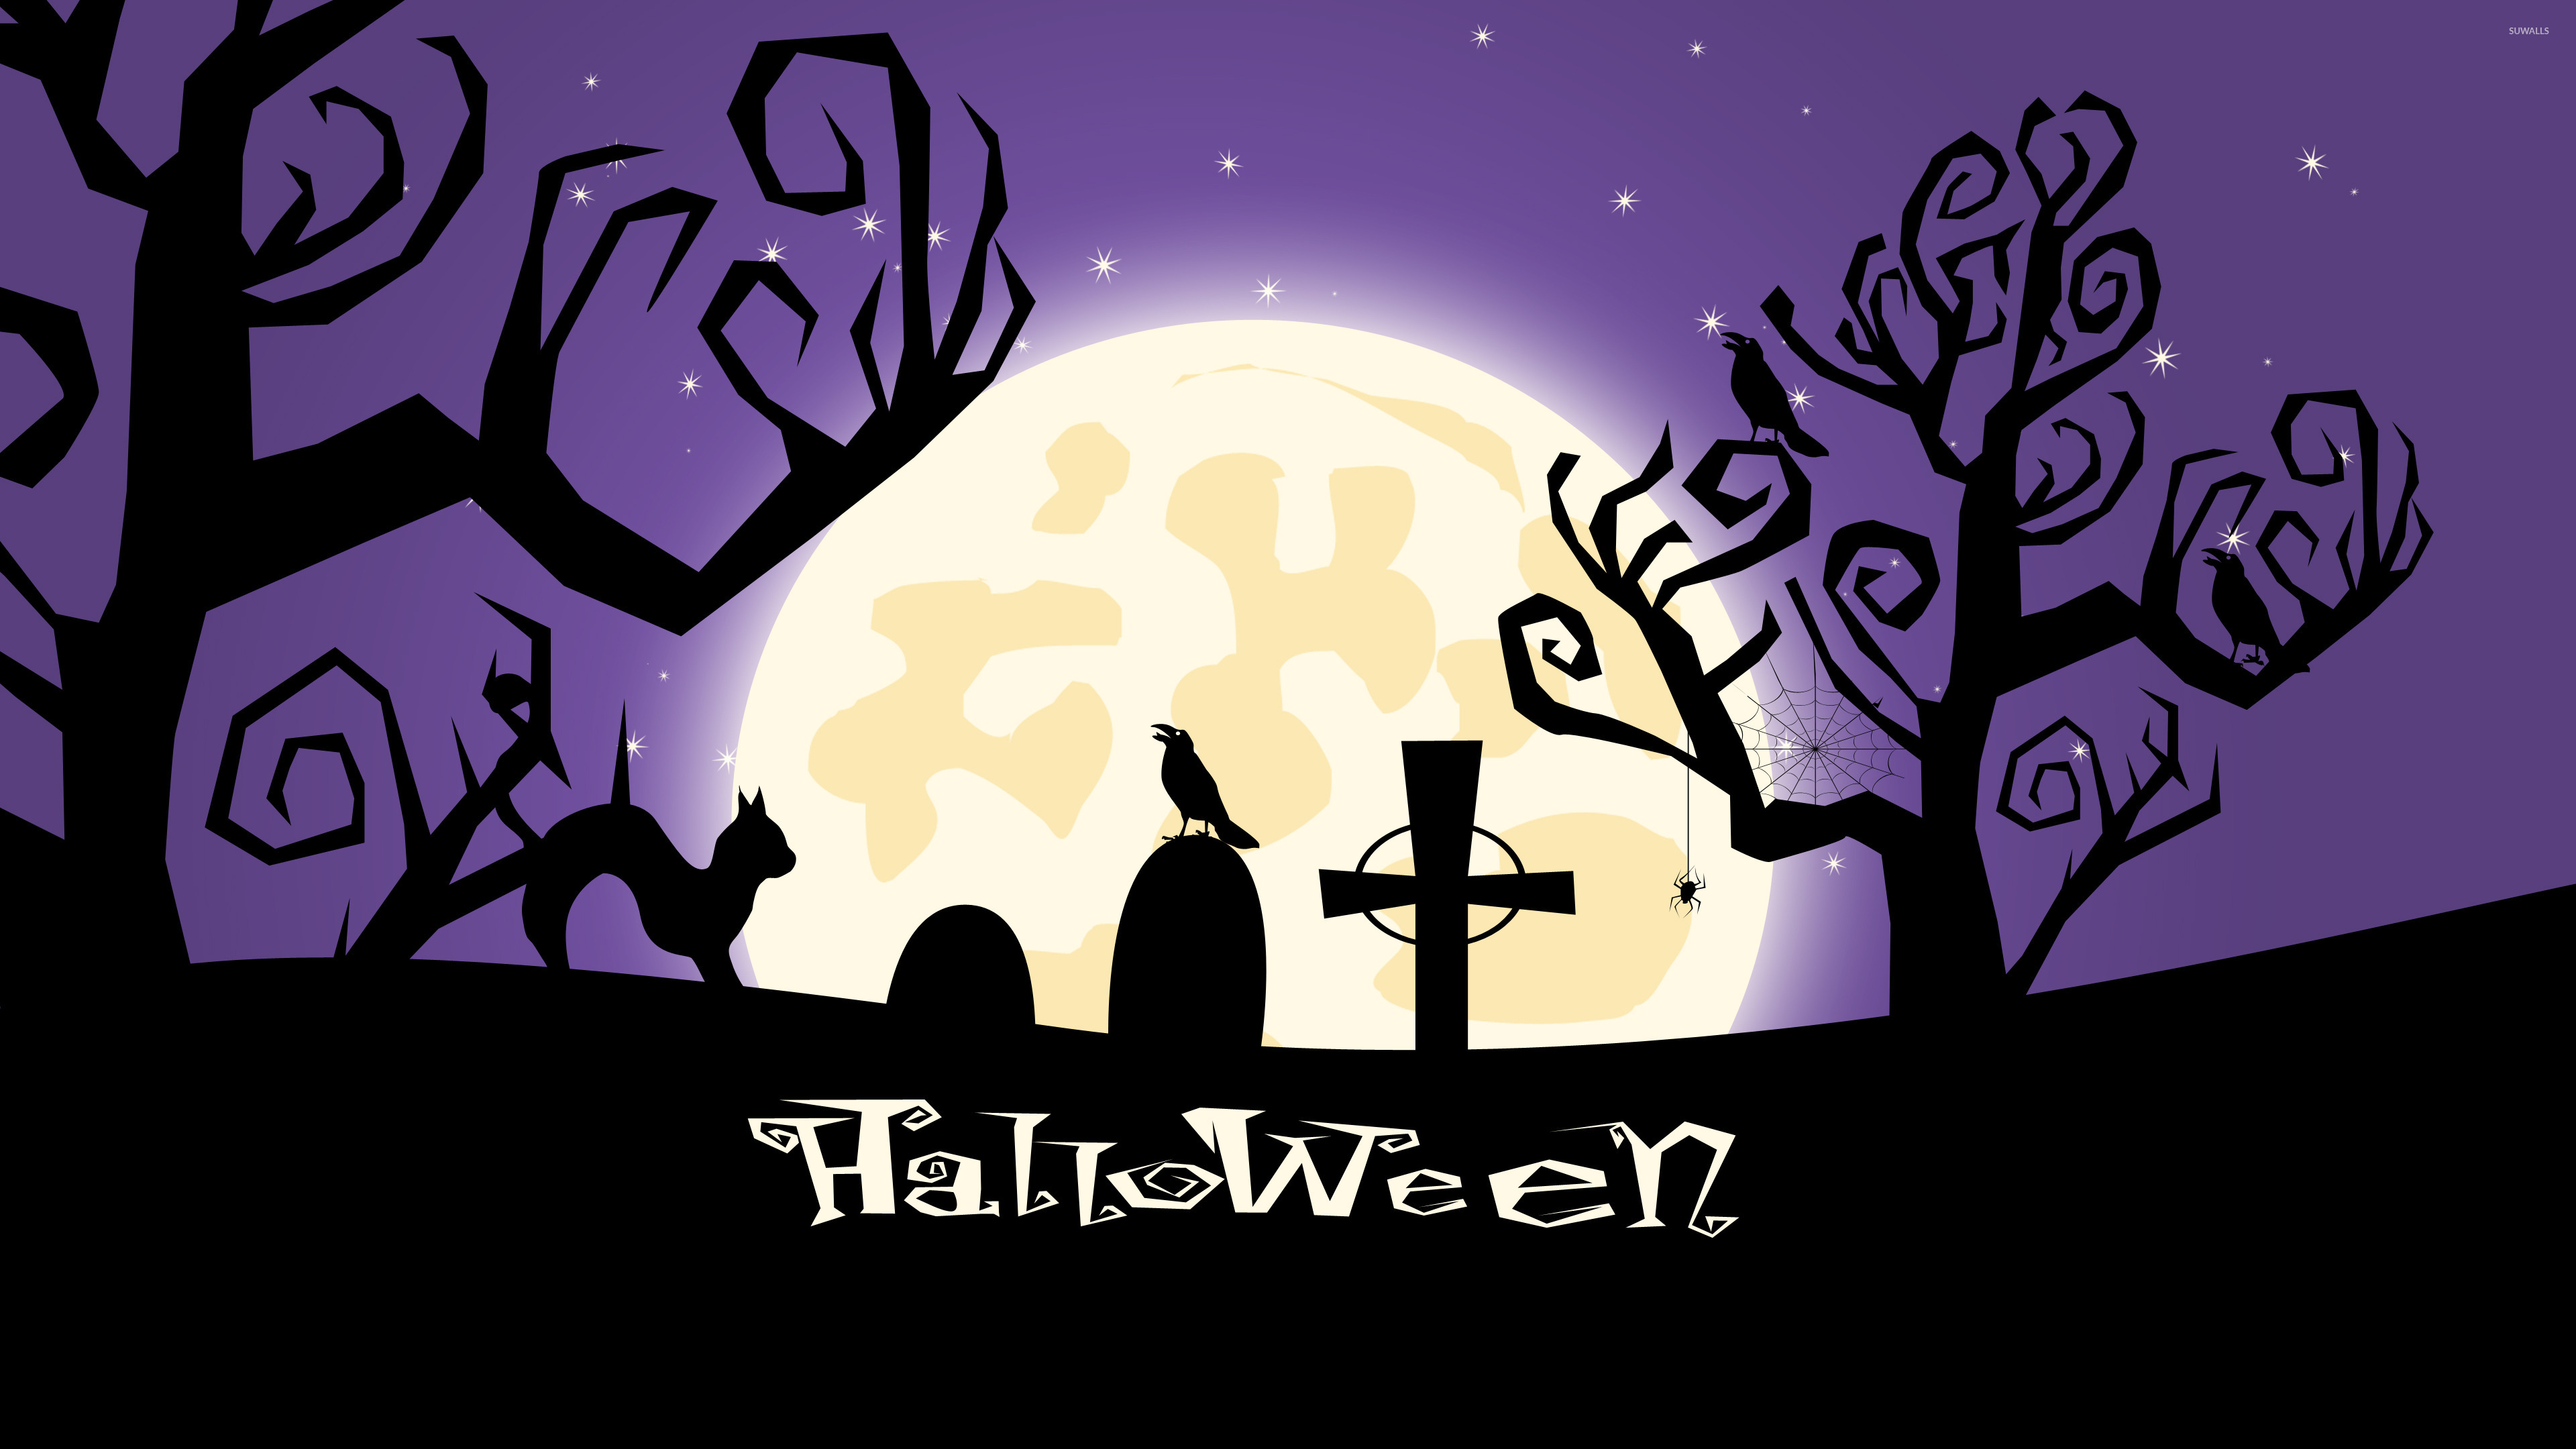 Halloween night in the graveyard wallpaper - Holiday wallpapers ...